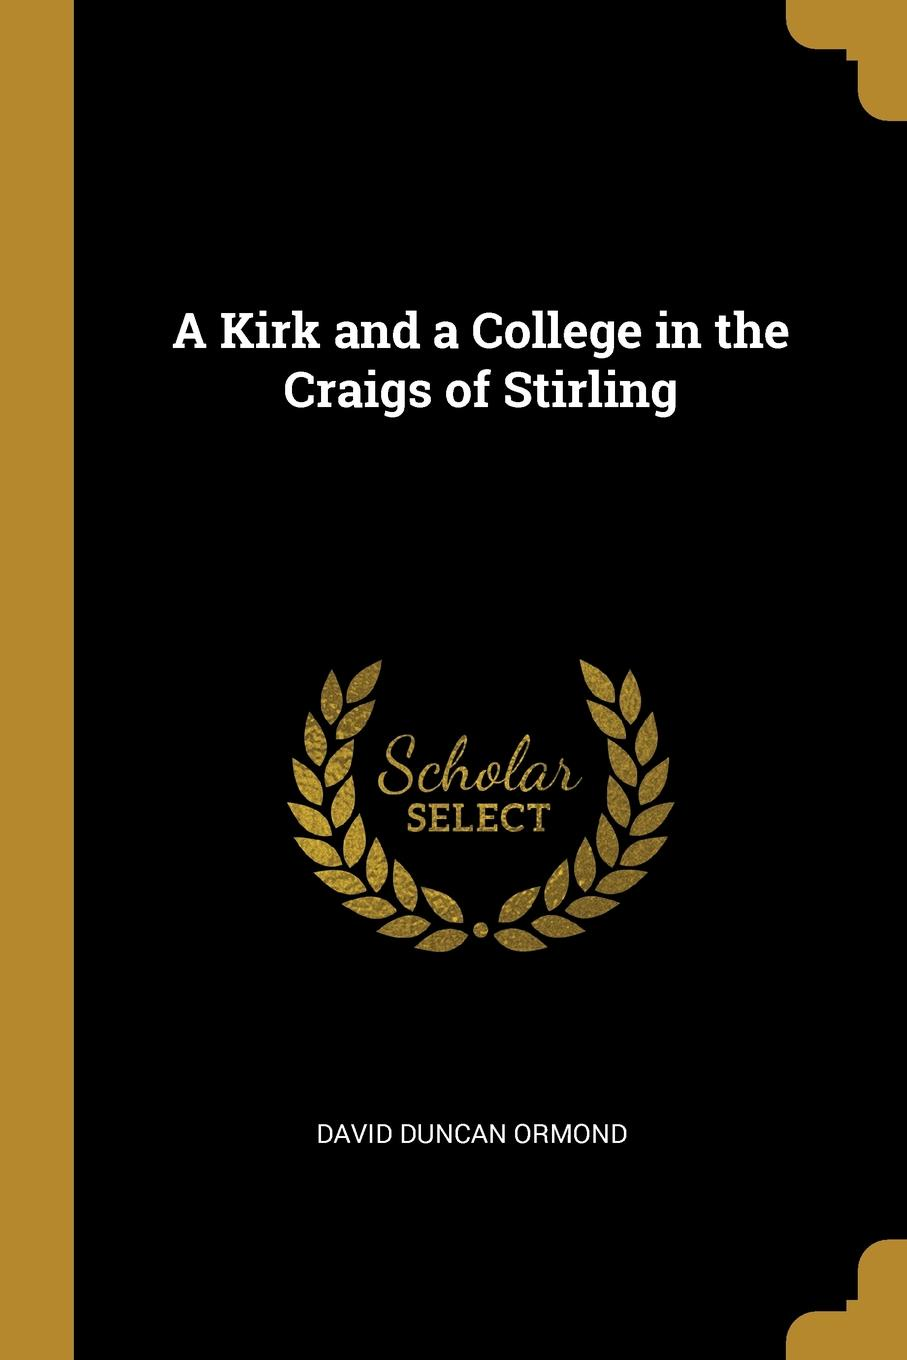 David Duncan Ormond A Kirk and a College in the Craigs of Stirling